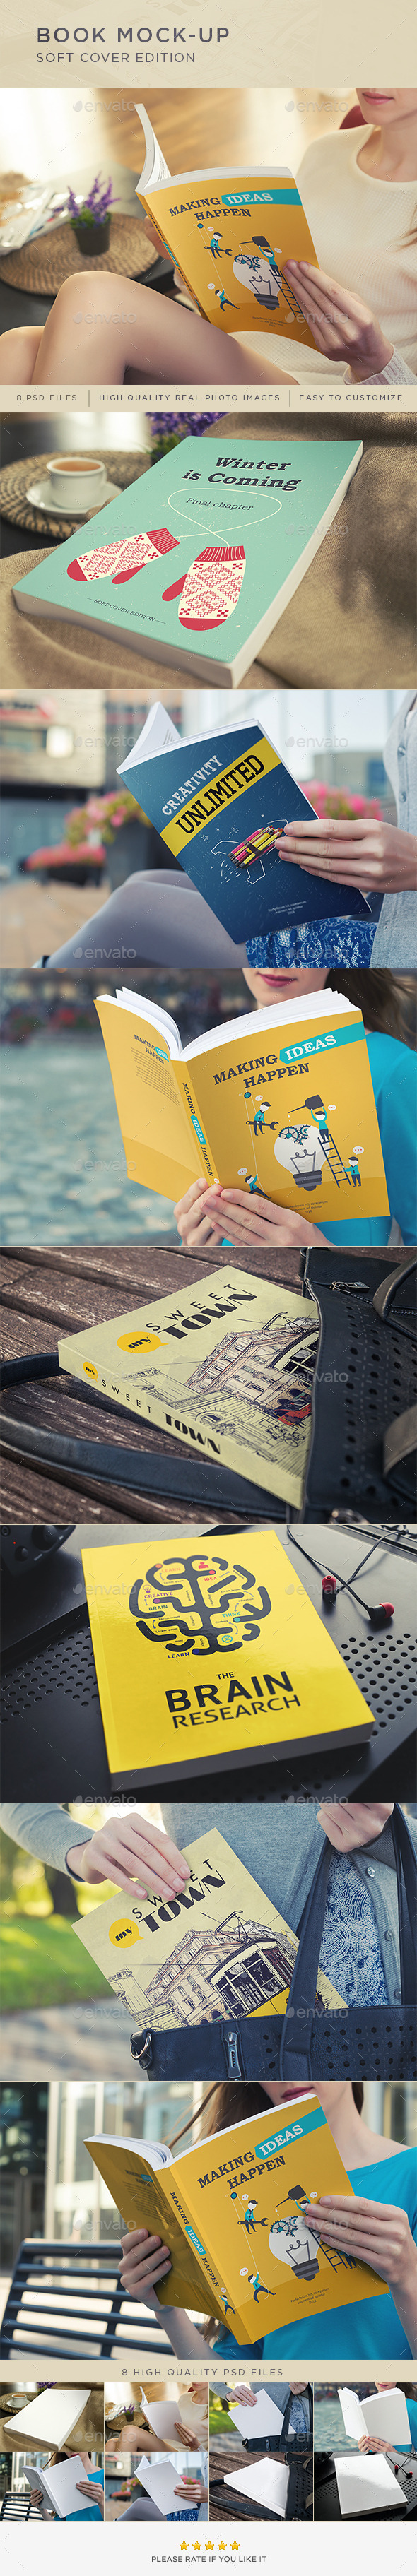 Book Mock-Up / Soft Cover Edition - Books Print